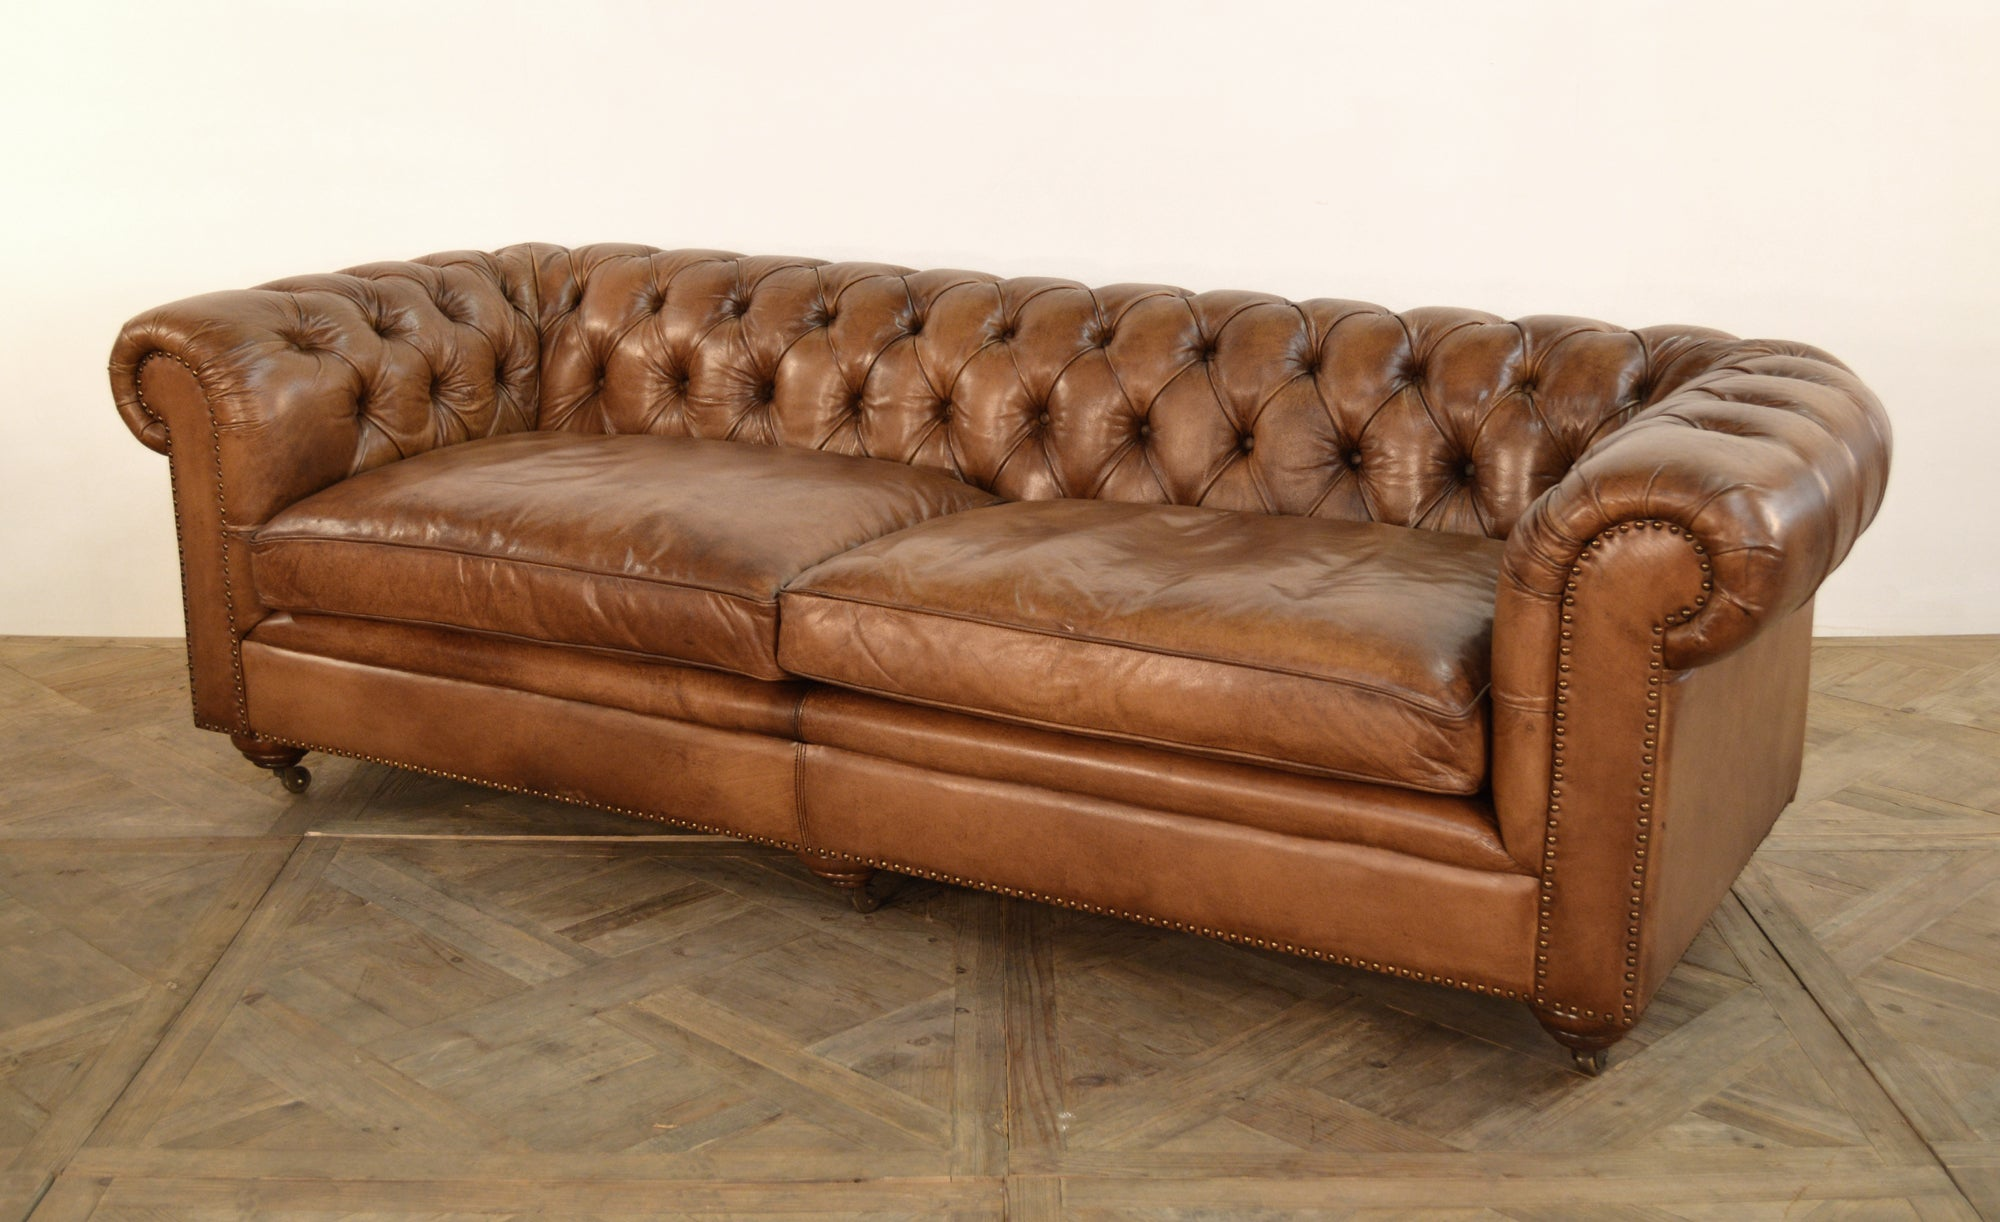 "Buffalo Brown Leather Sofa Chesterfield Style Button Tufted 96"" - Furniture on Main"